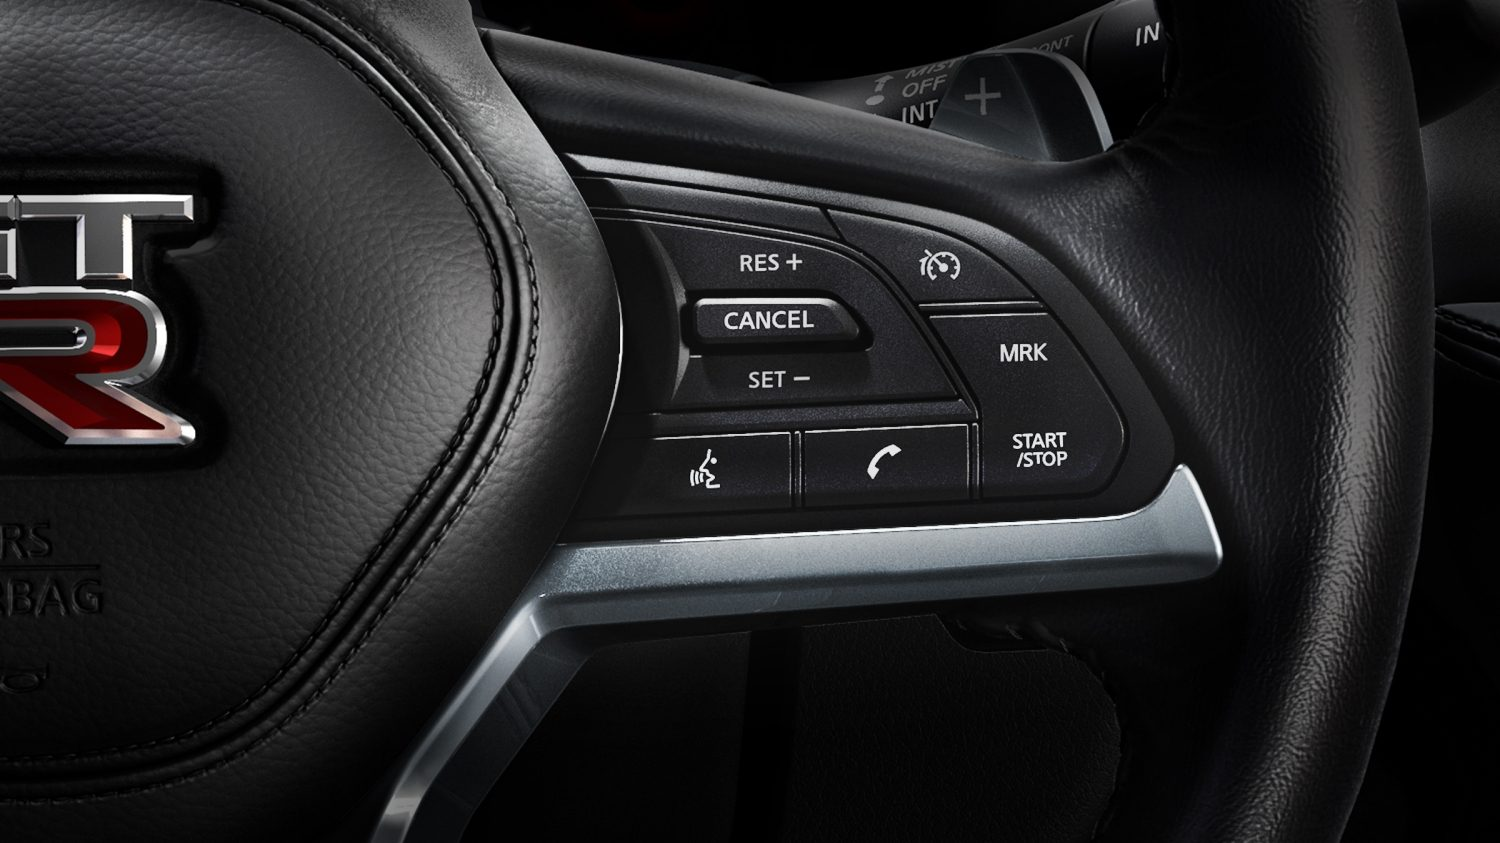 Nissan GT-R steering wheel bluetooth controls